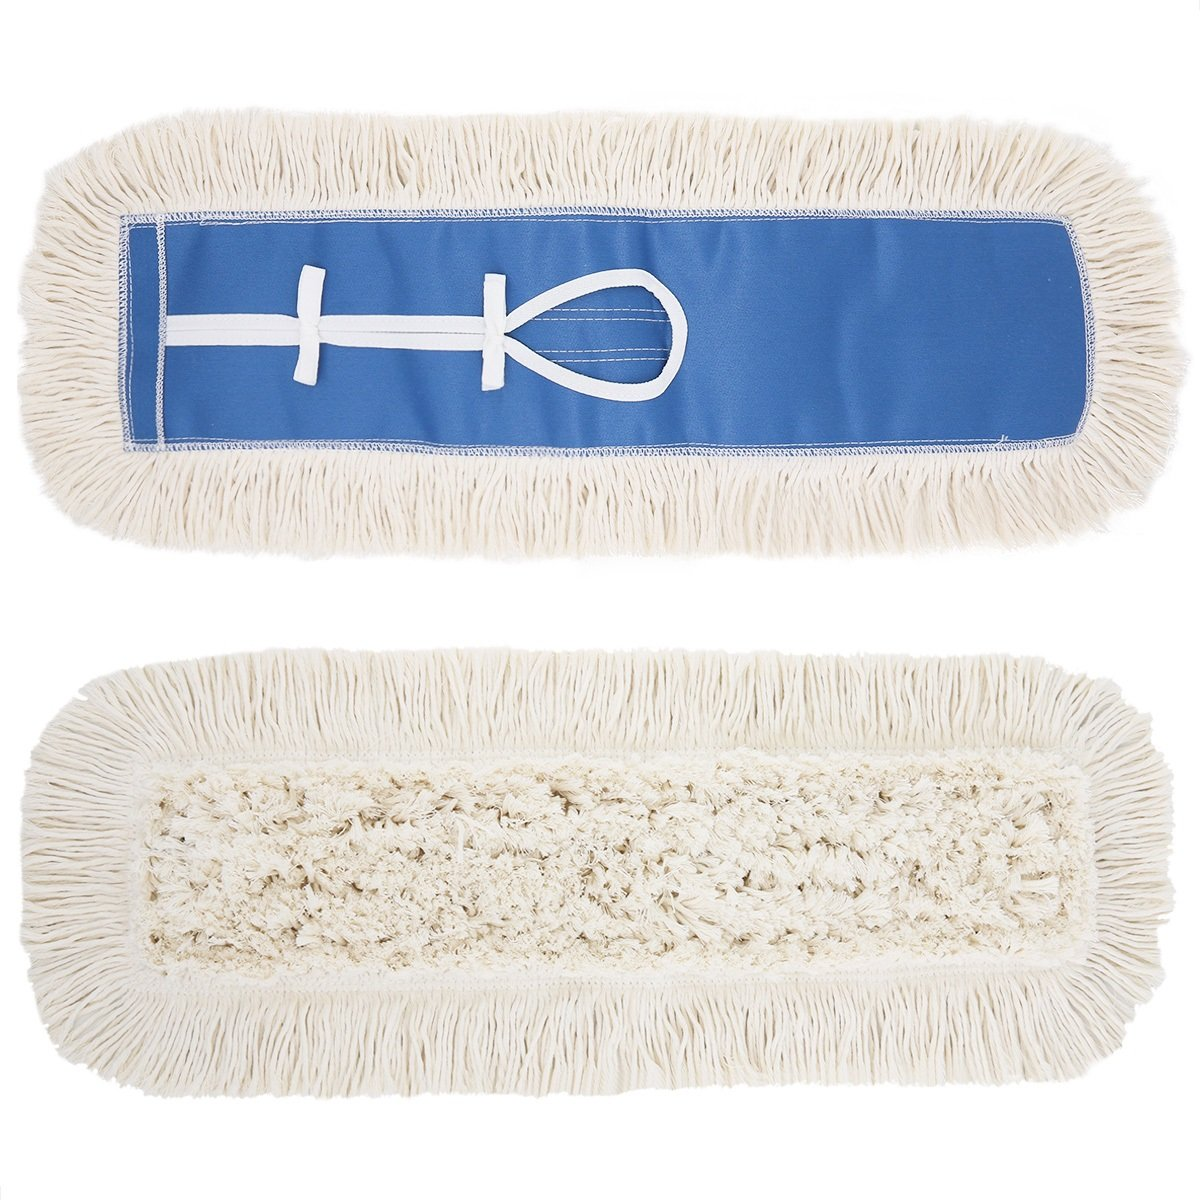 24'' Dust Mop Refill, Long Lasting Industrial Strength Washable Cotton Flip Mop Pad- Machine Washable, Concrete Hardwood and Laminate Floors Mop Head, Fits All 24'' Frame Mop, Commercial Strength, 1 pc